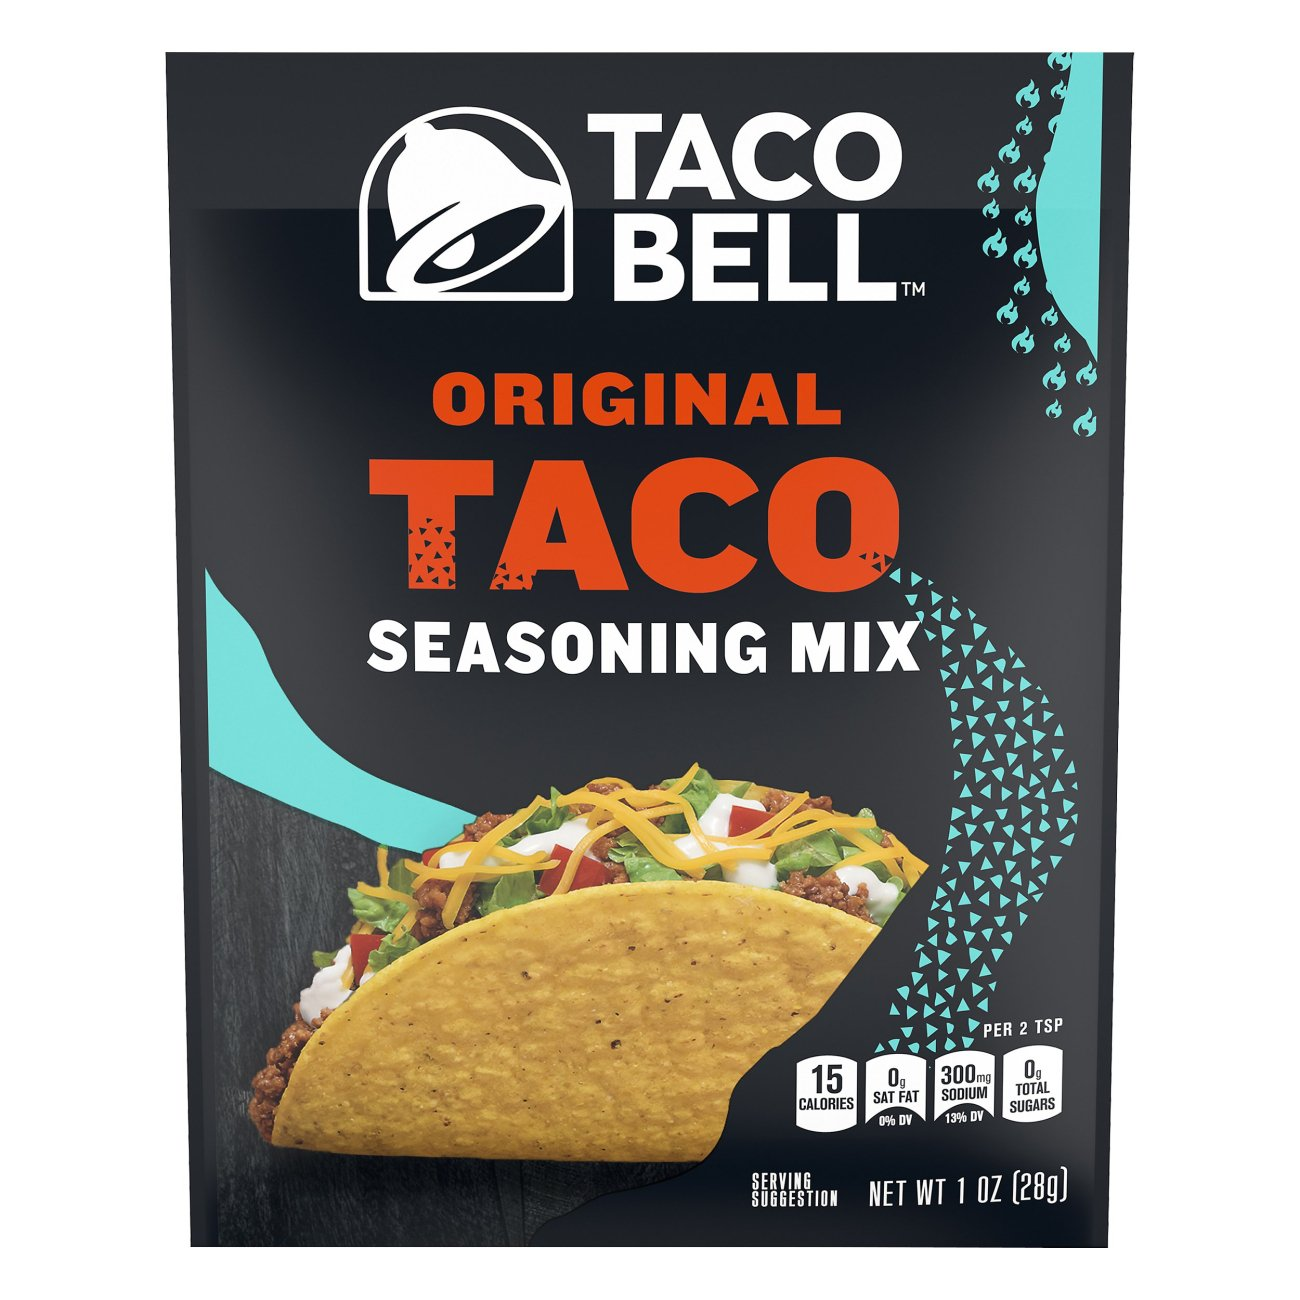 Taco Bell Original Taco Seasoning Mix Shop Spice Mixes At H E B